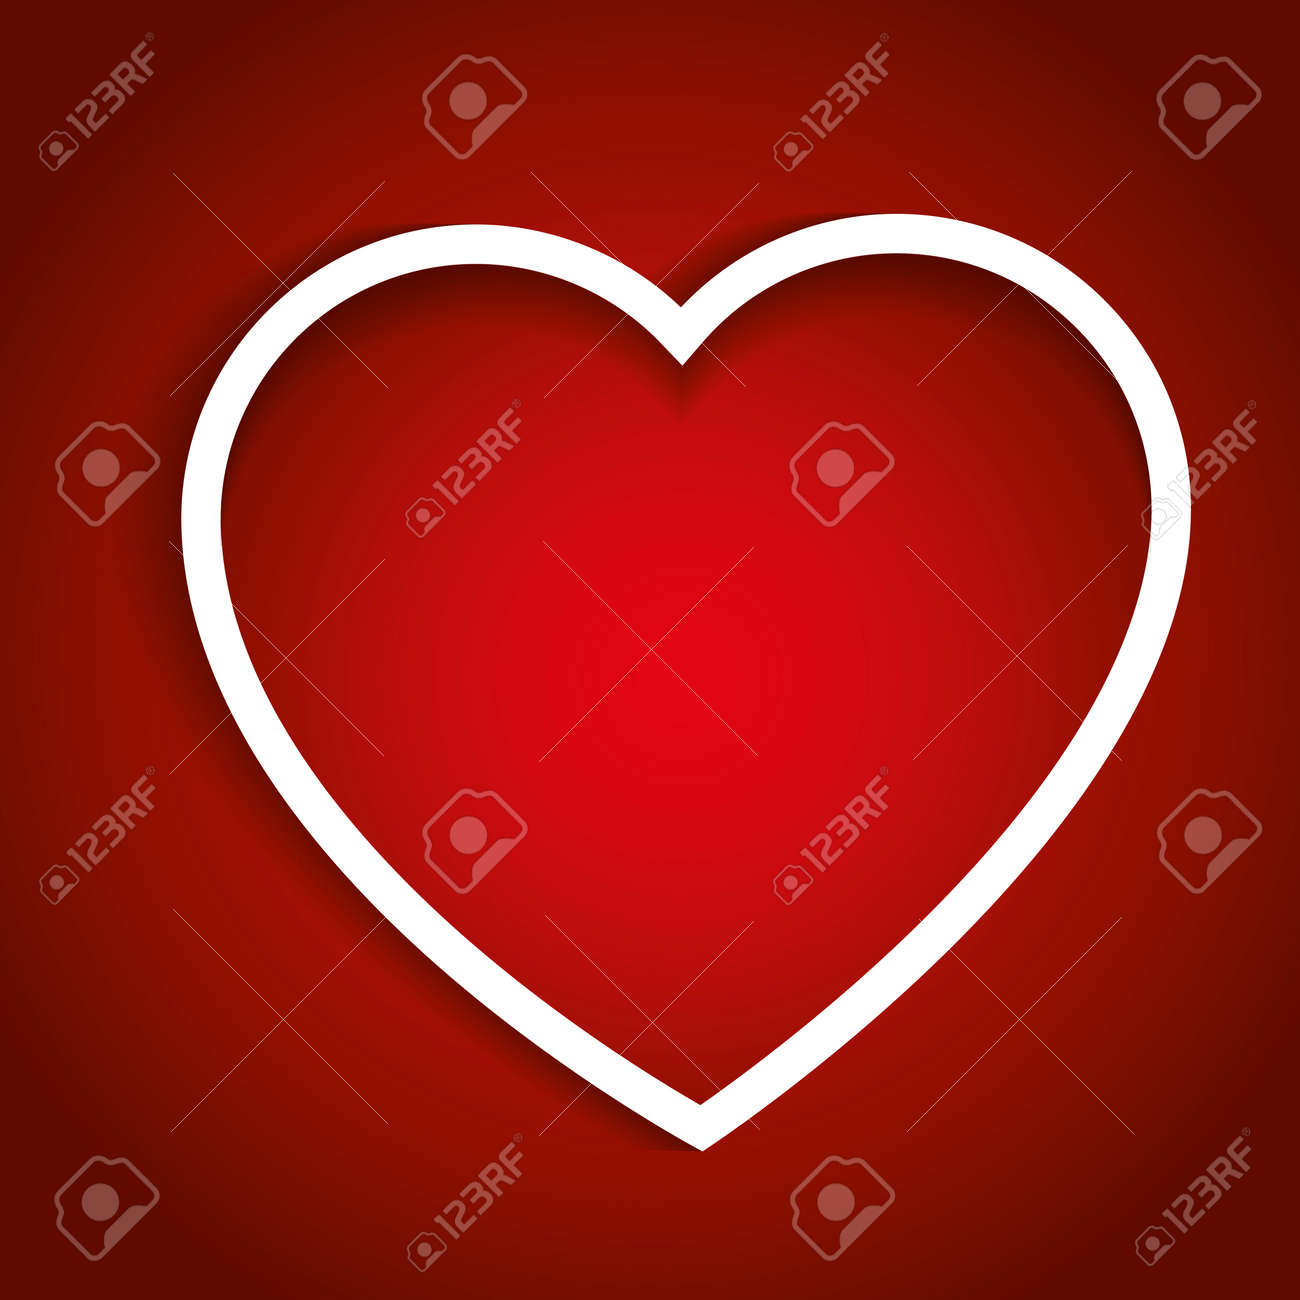 Valentines Heart In Red Valentines Day Love Concept Love Symbol